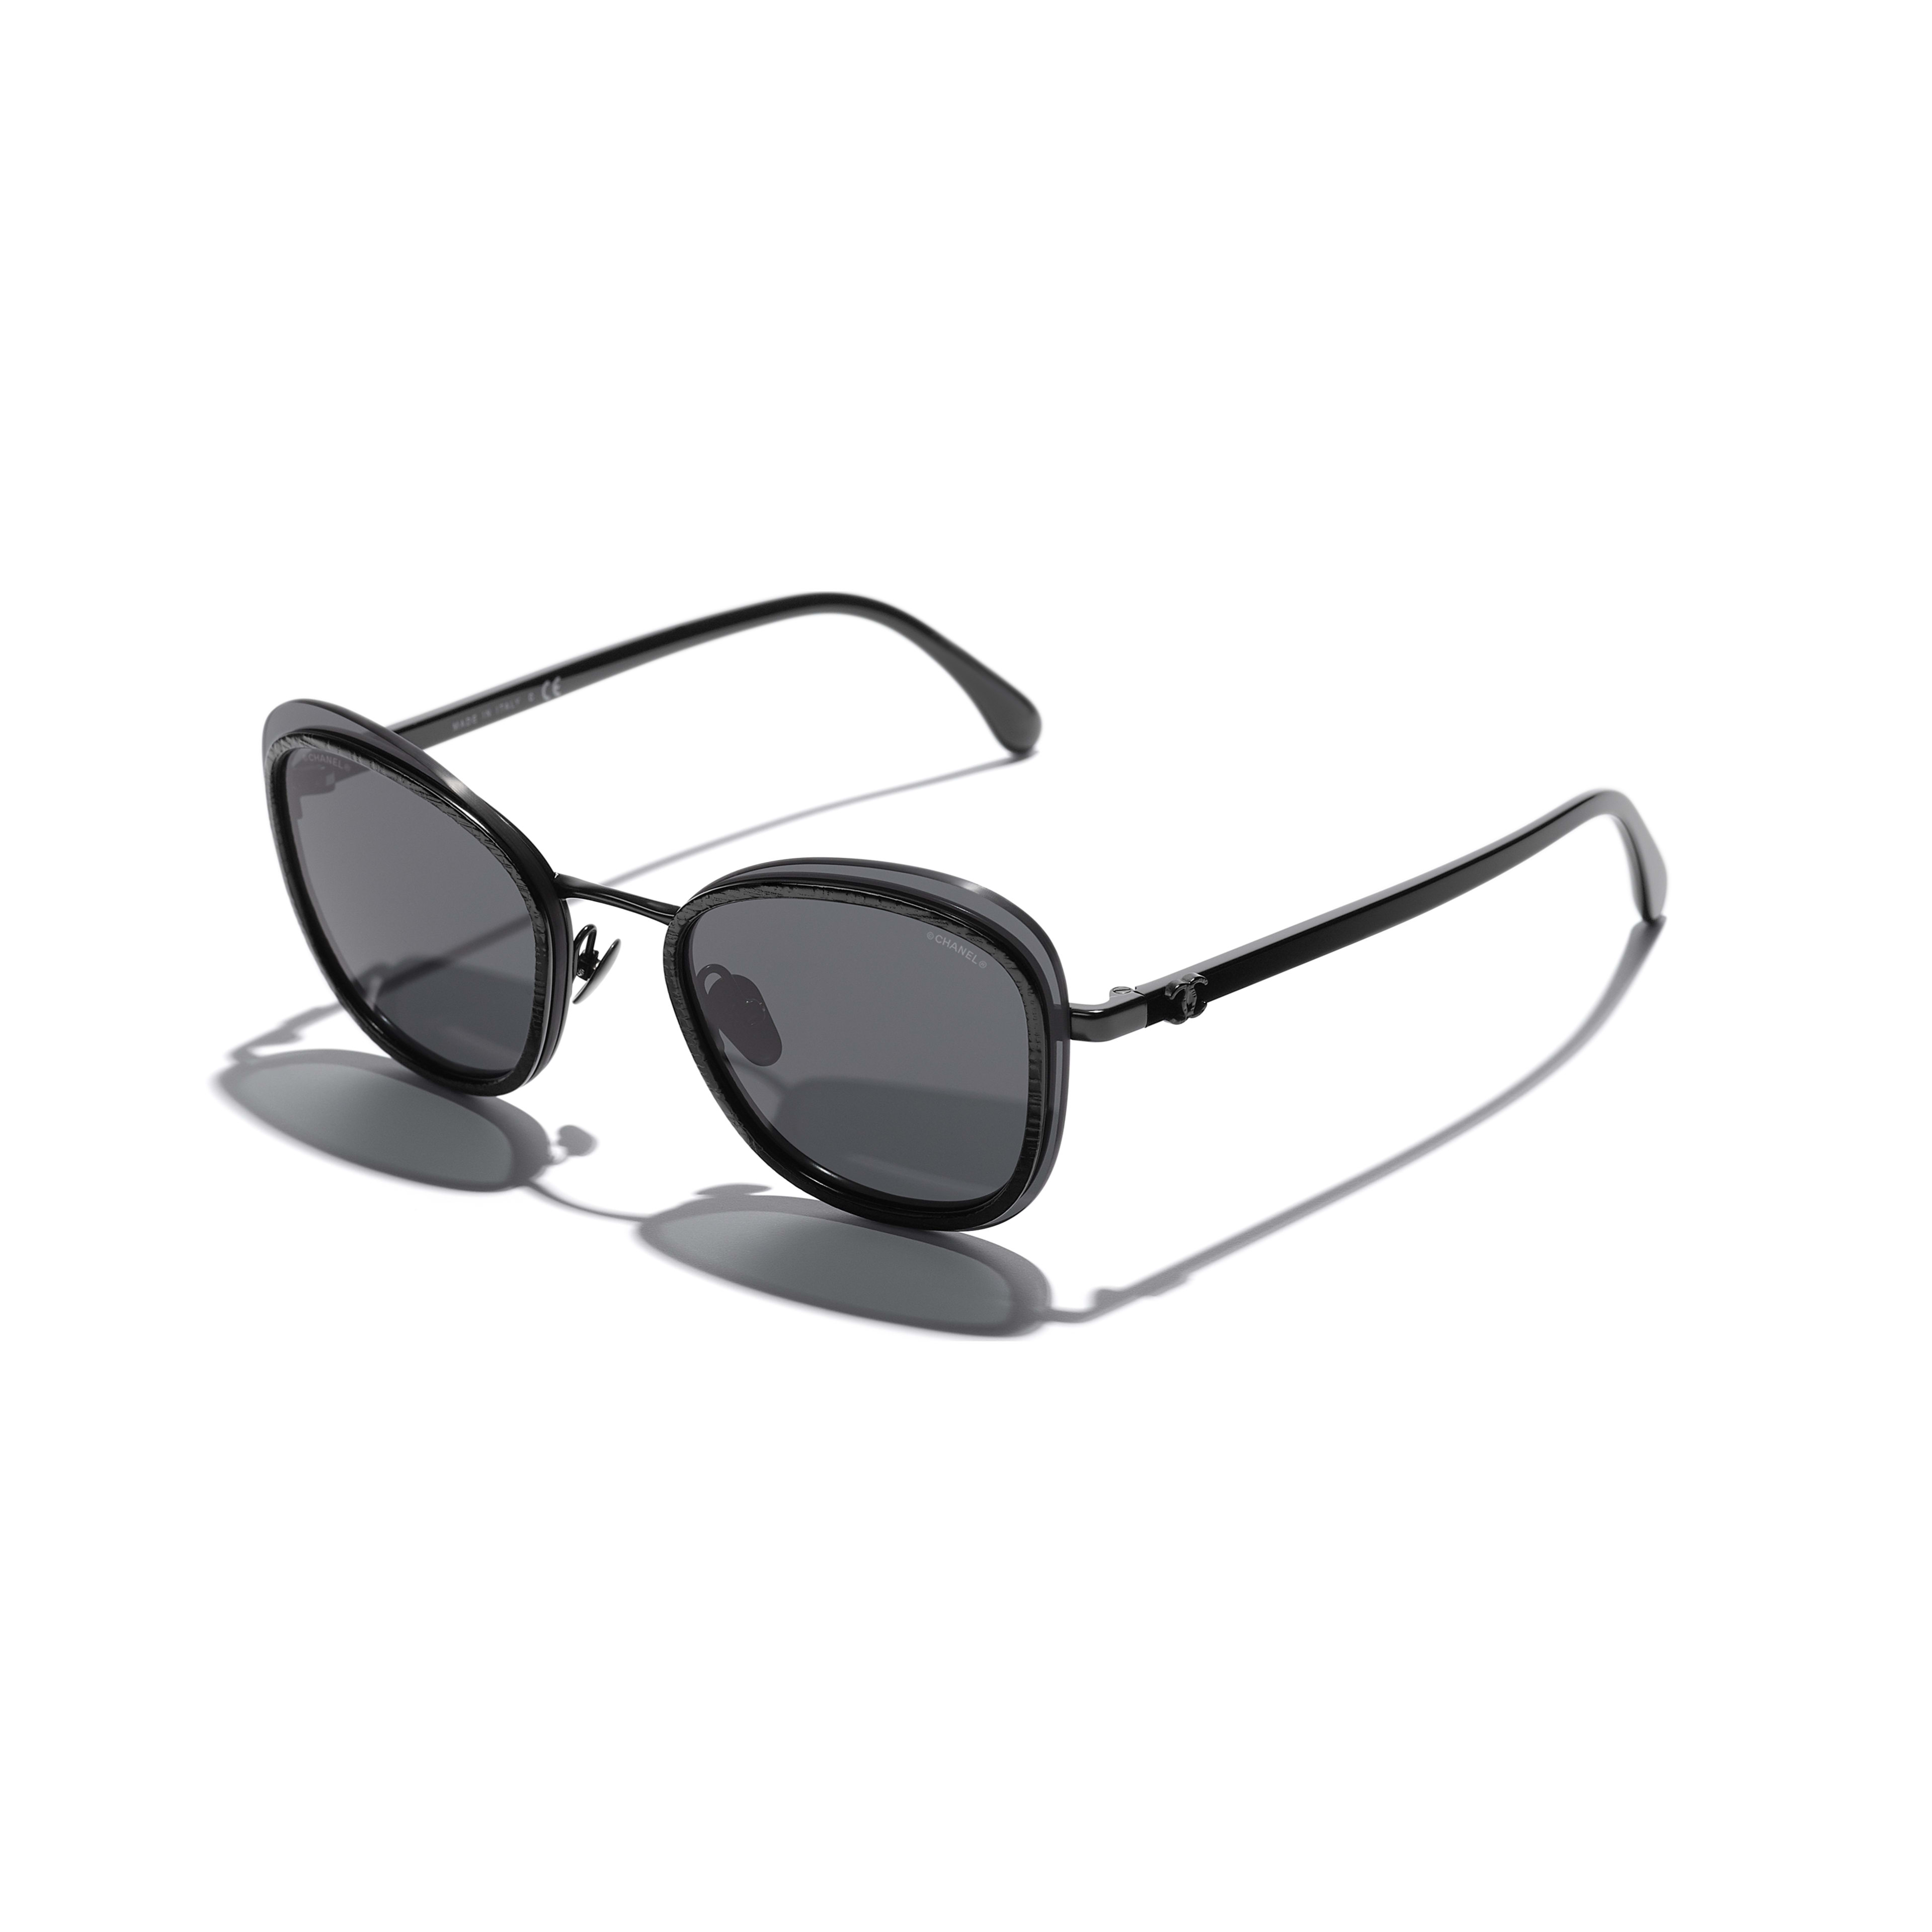 Pantos Sunglasses - Black - Acetate & Metal - CHANEL - Extra view - see standard sized version